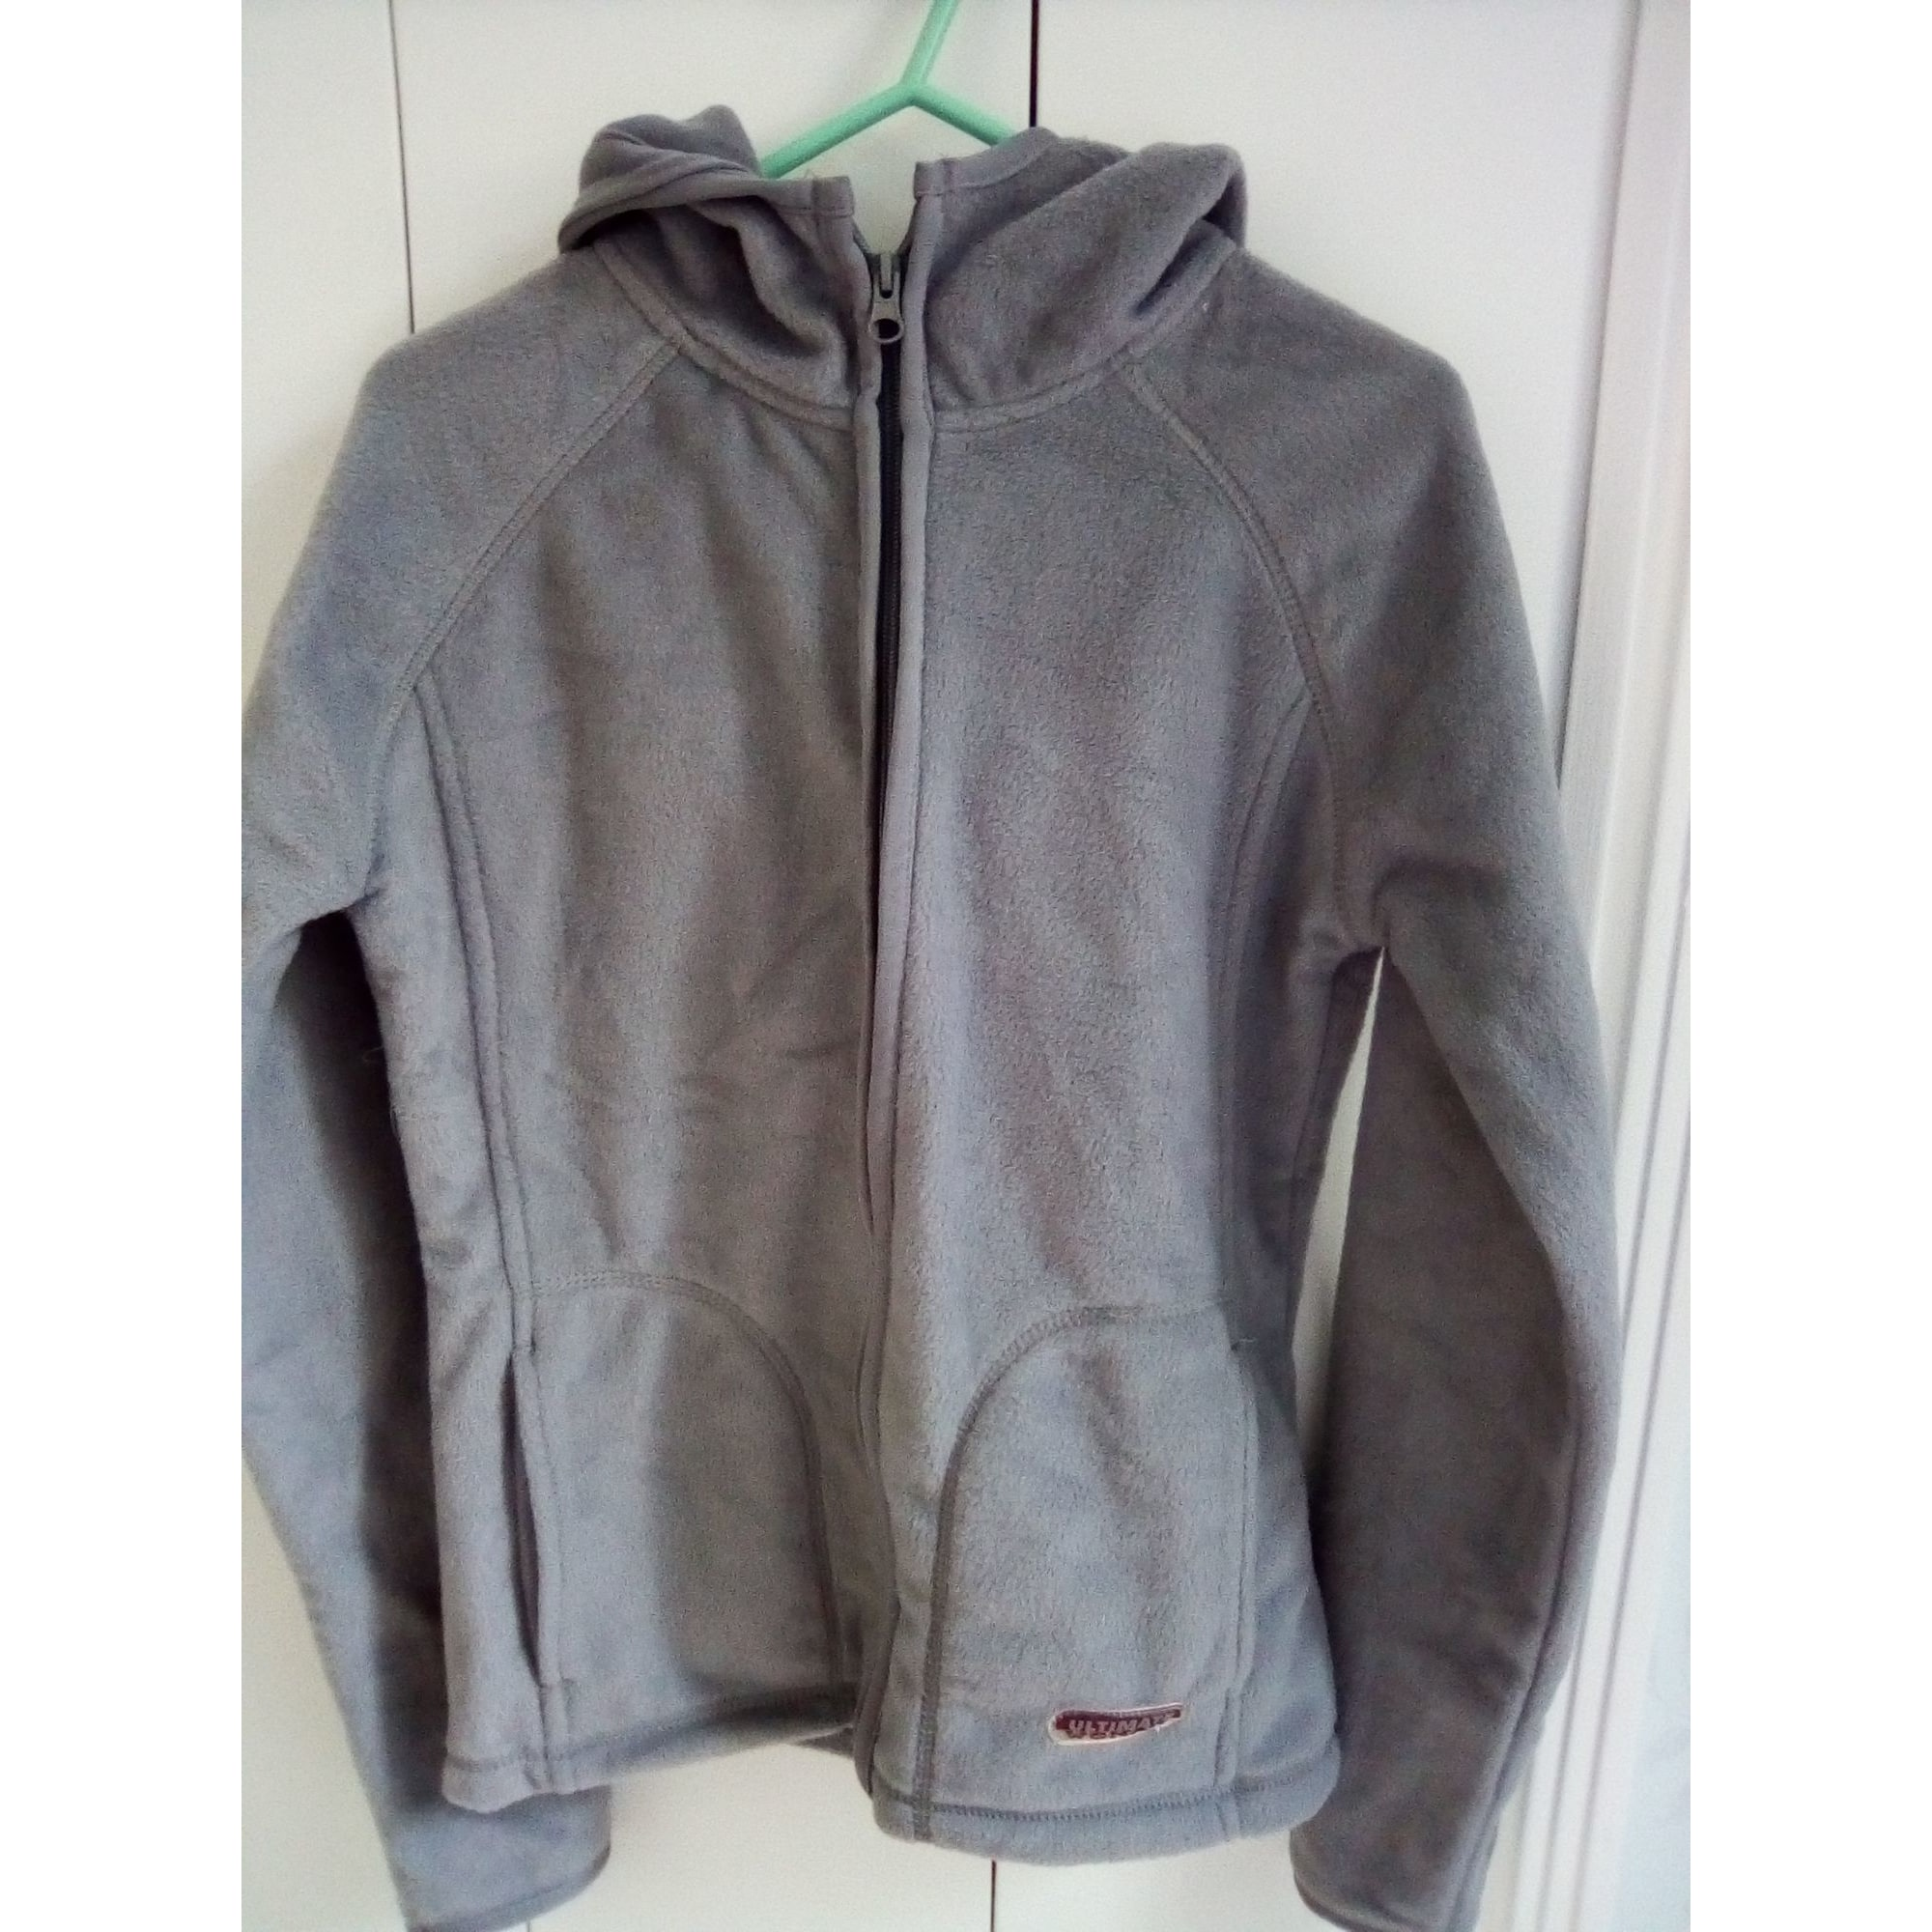 Polaire BASIC ONE Gris, anthracite